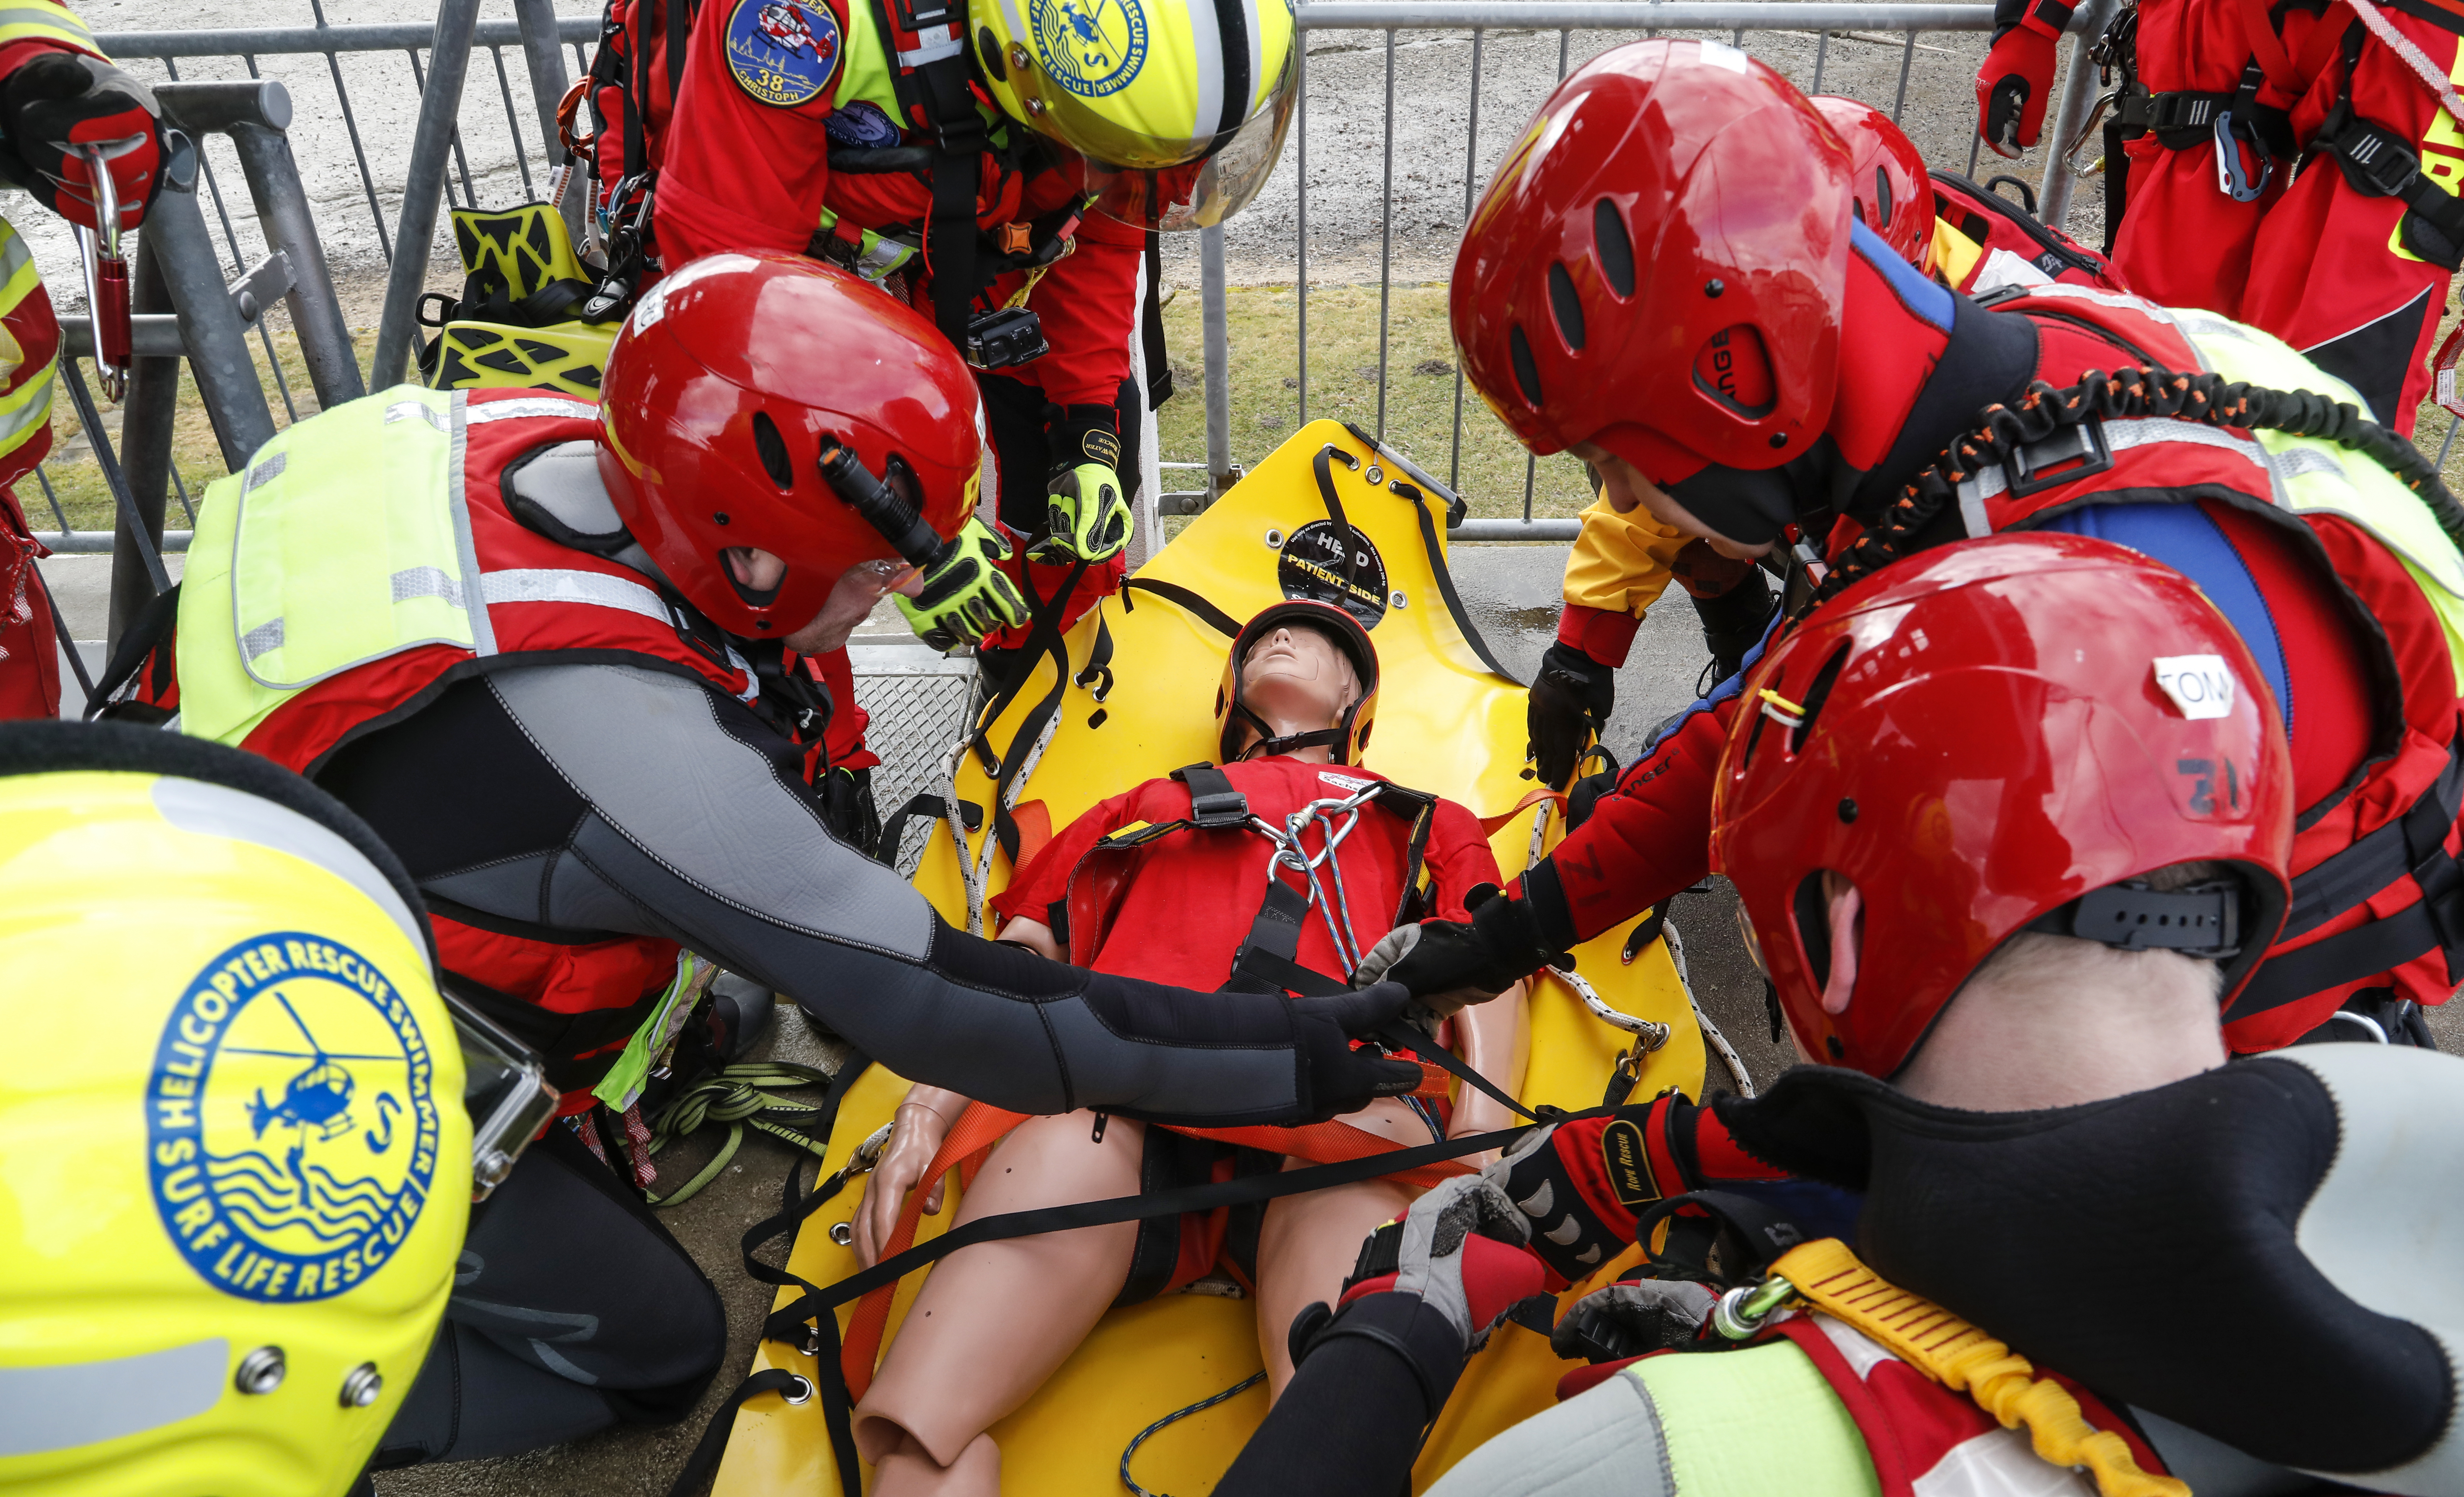 Emergency Live | The emergence of the HRS - Surf Life Rescue: water rescue and safety image 28